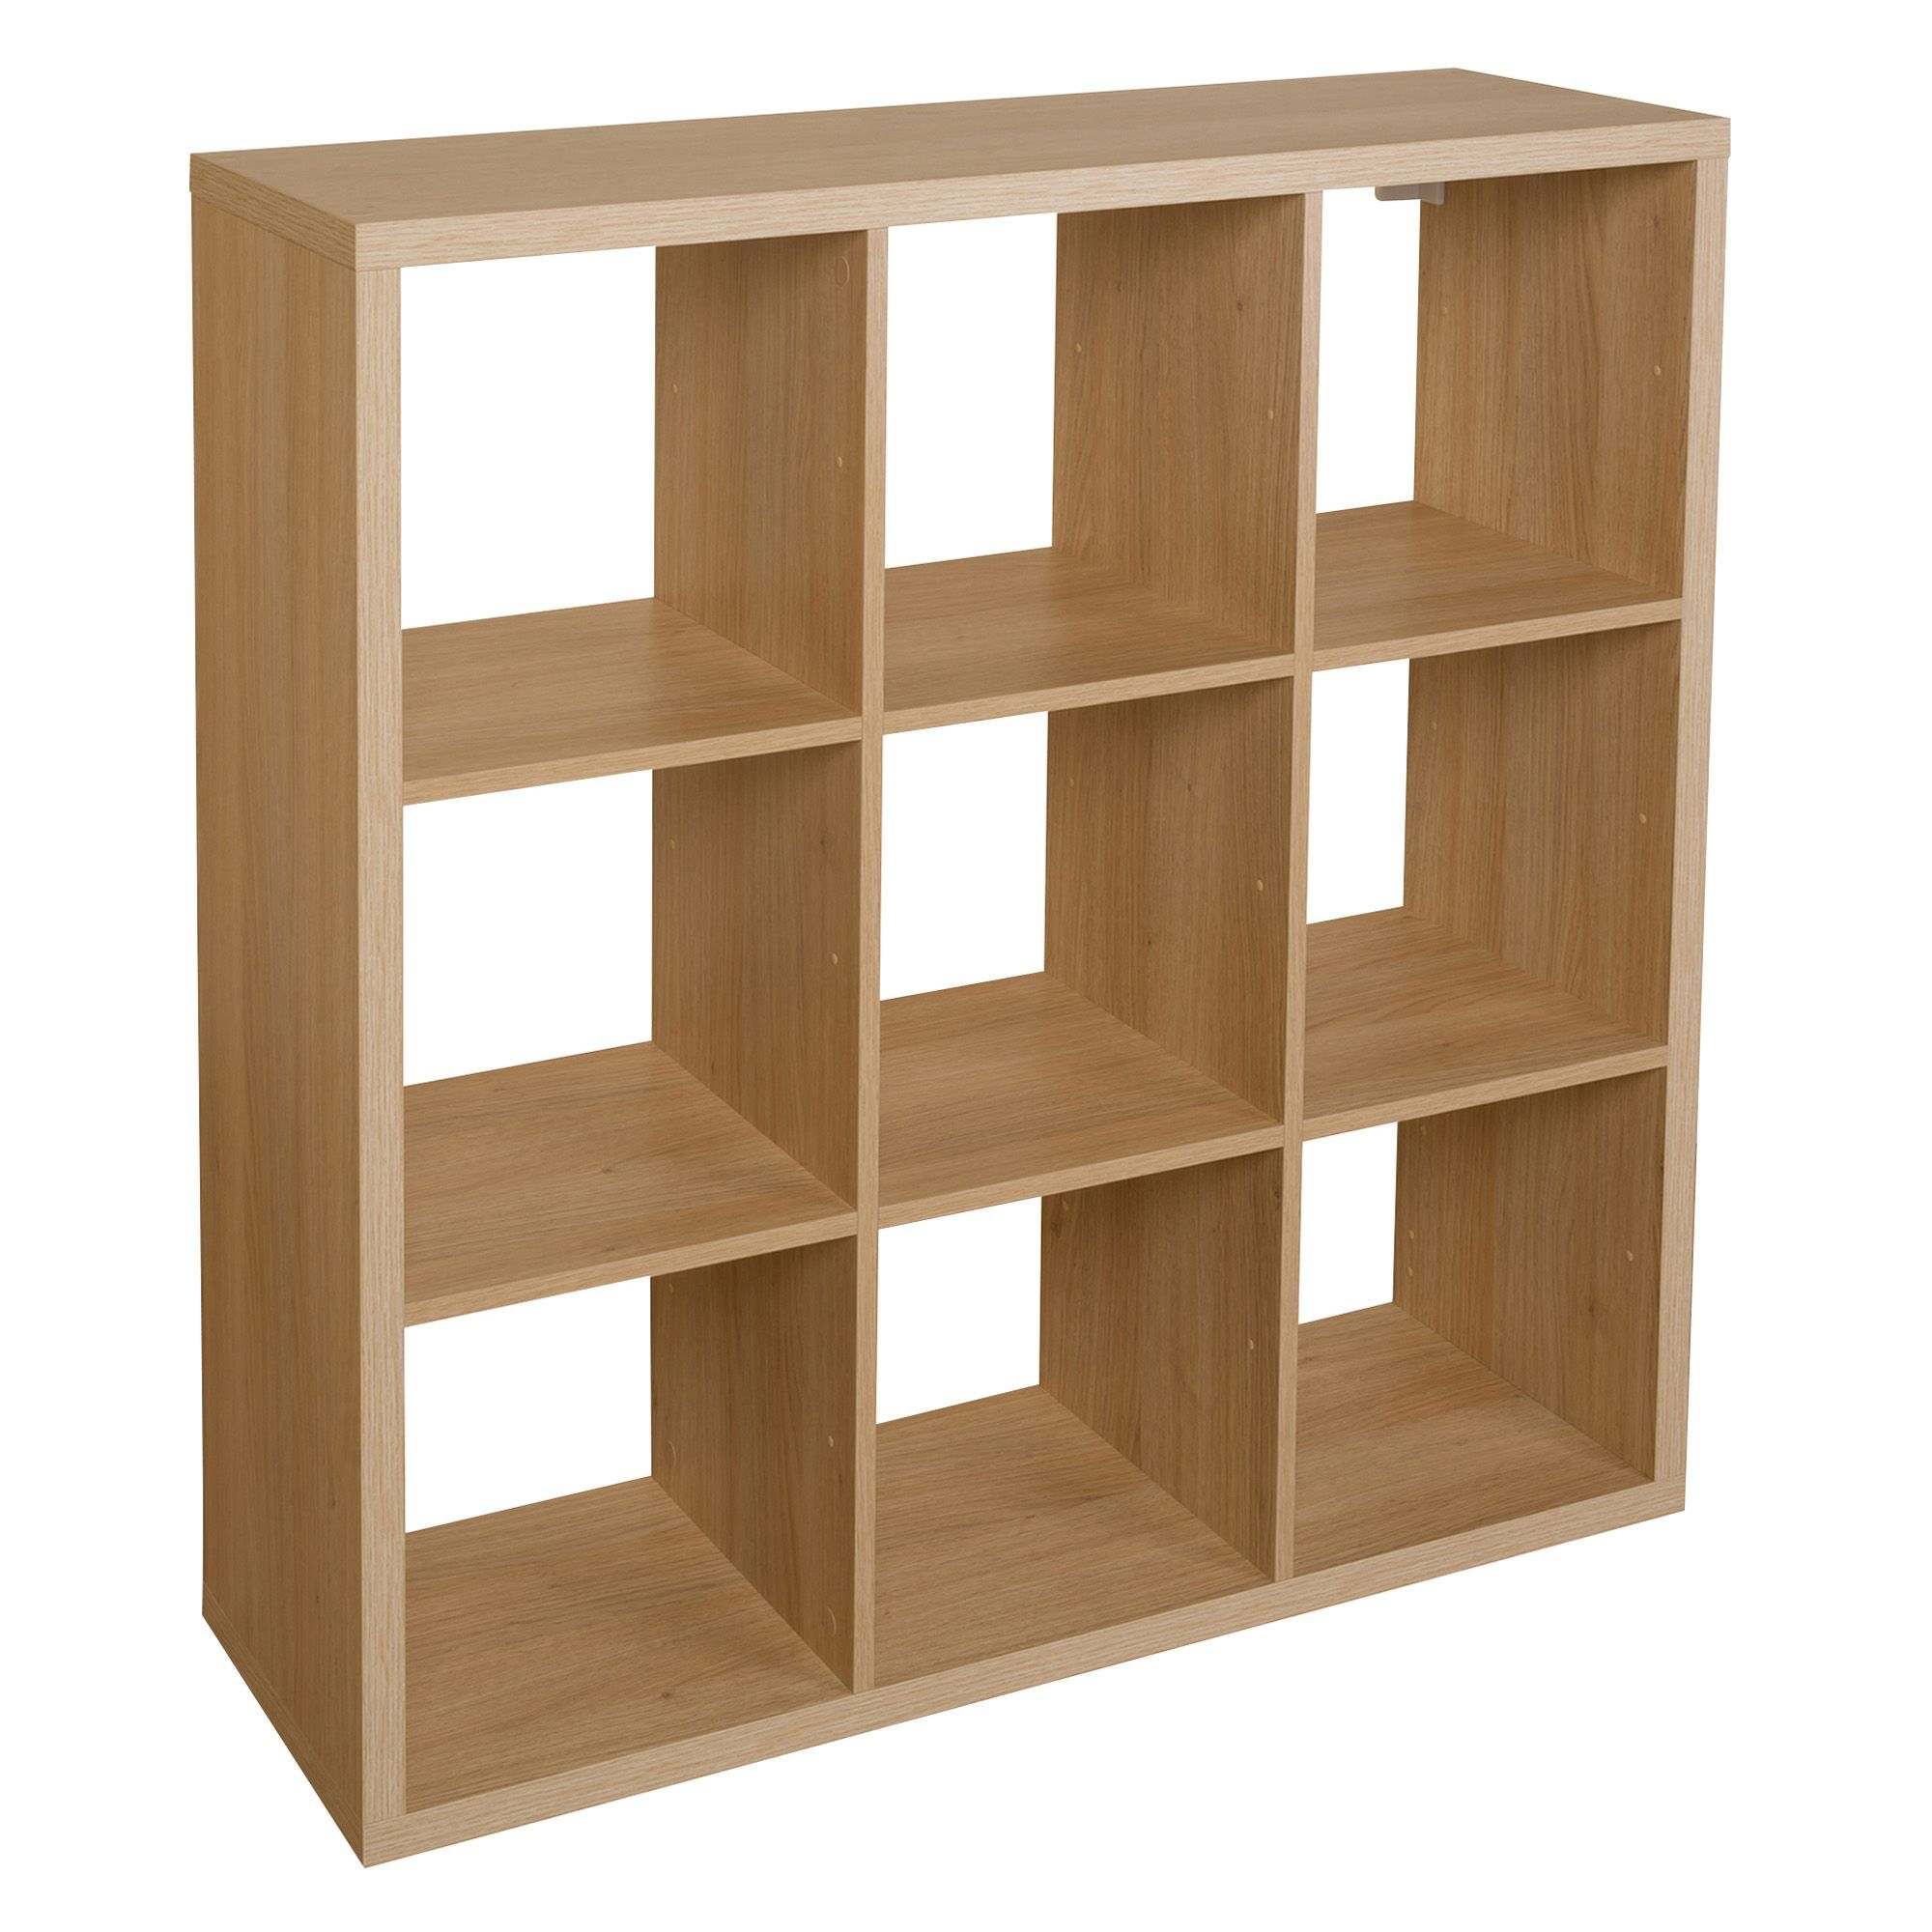 Form Mixxit 9 Cube Shelving Unit H 1080mm W 1080mm